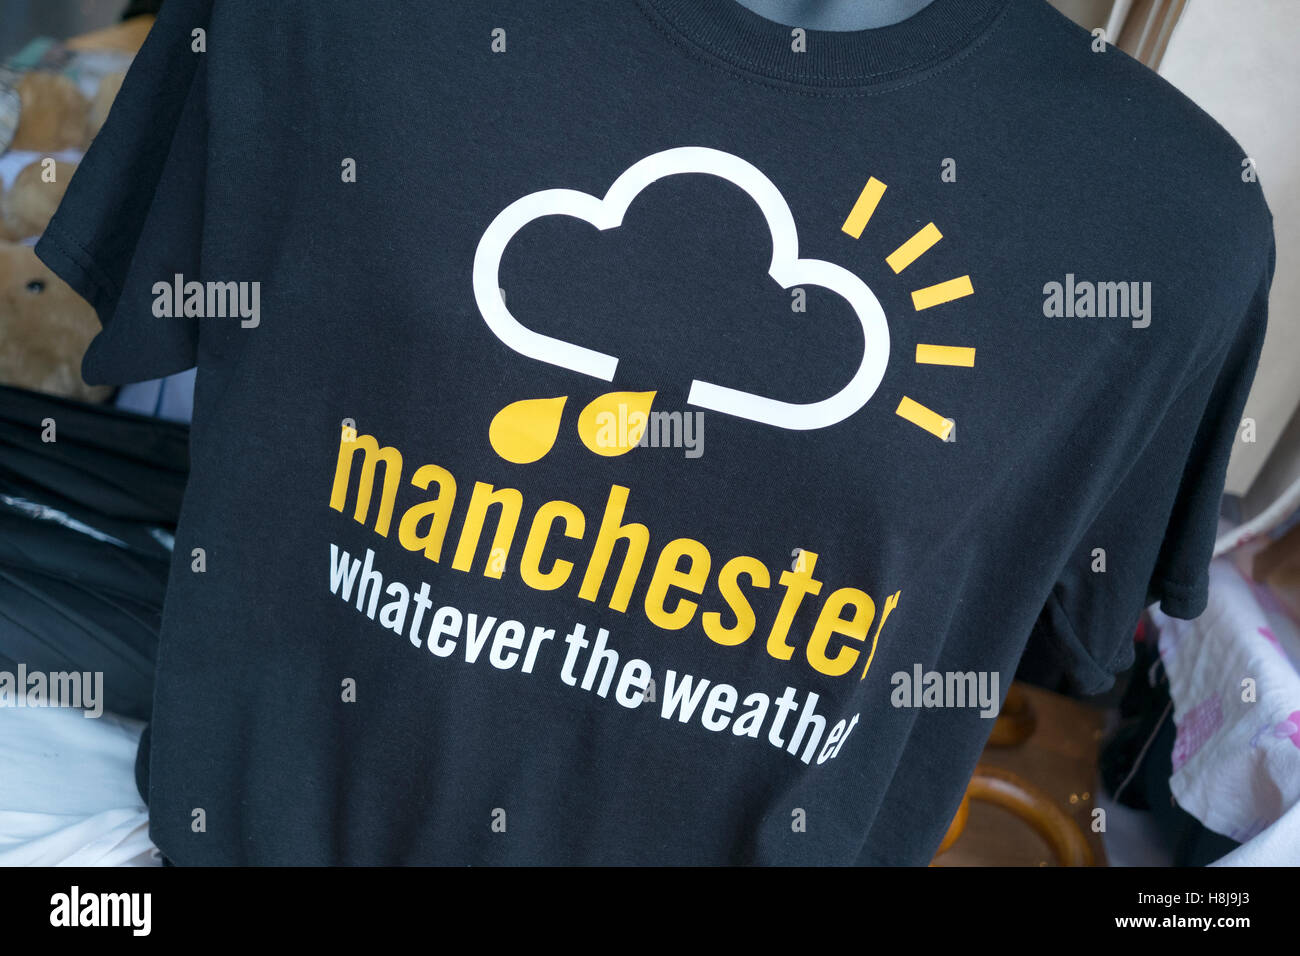 Manchester weather T-shirt for sale in the Christmas markets on Spinningfields, Manchester, UK - Stock Image